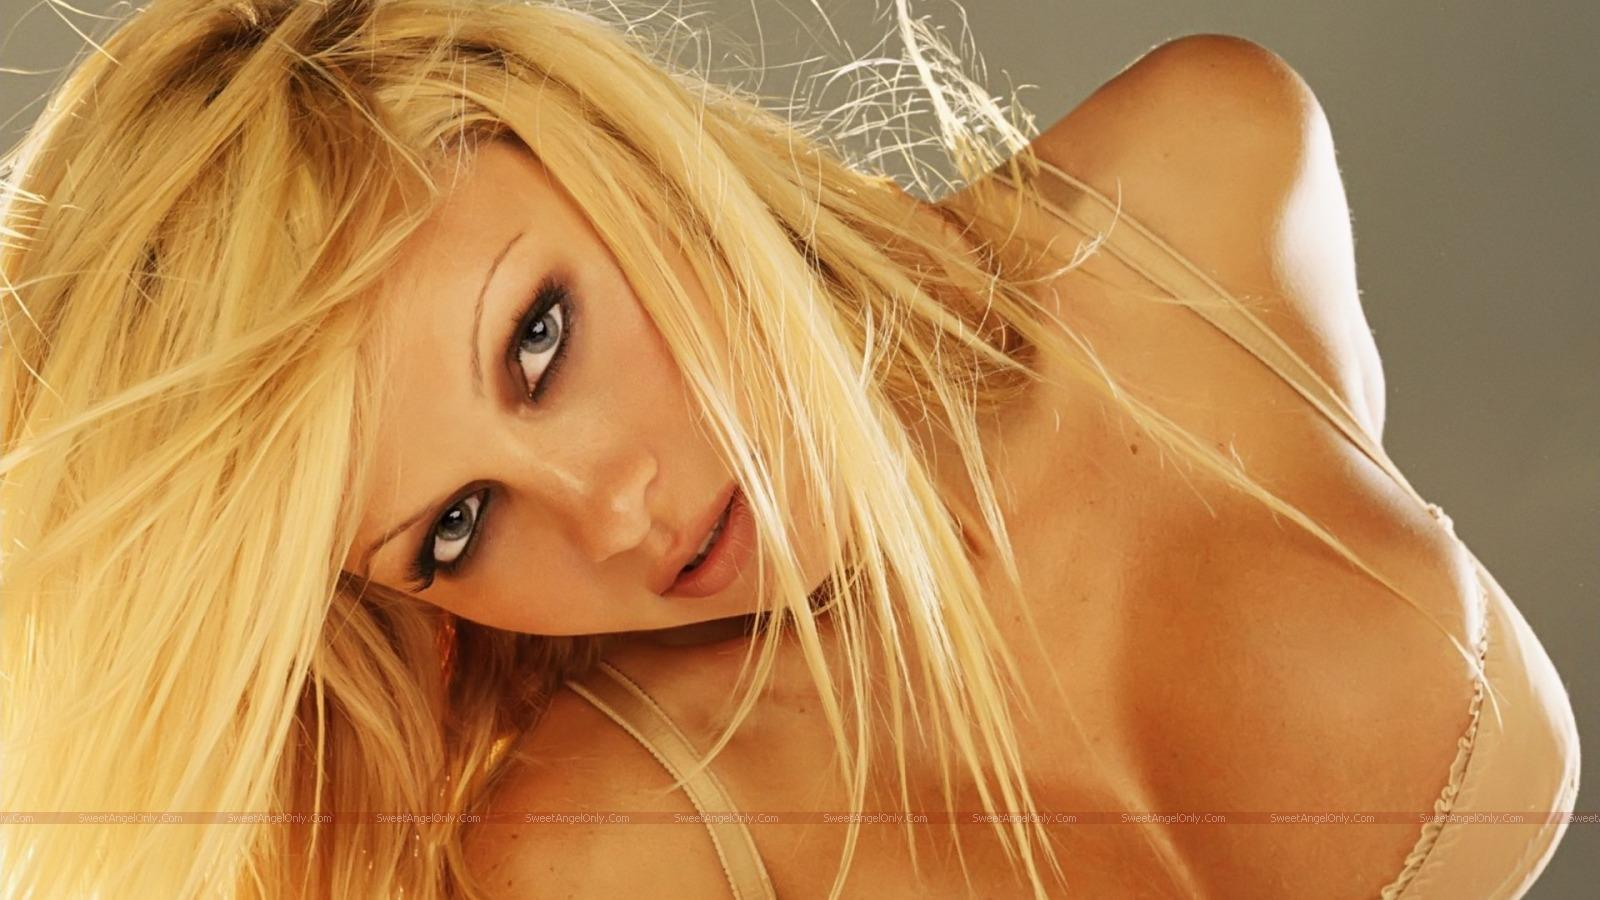 http://4.bp.blogspot.com/_jJPqWg6V3Y8/TUAmLT3EB6I/AAAAAAAAD10/MjVr7u-p1iM/s1600/hollywood_hot_actress_wallpapers_12.jpg